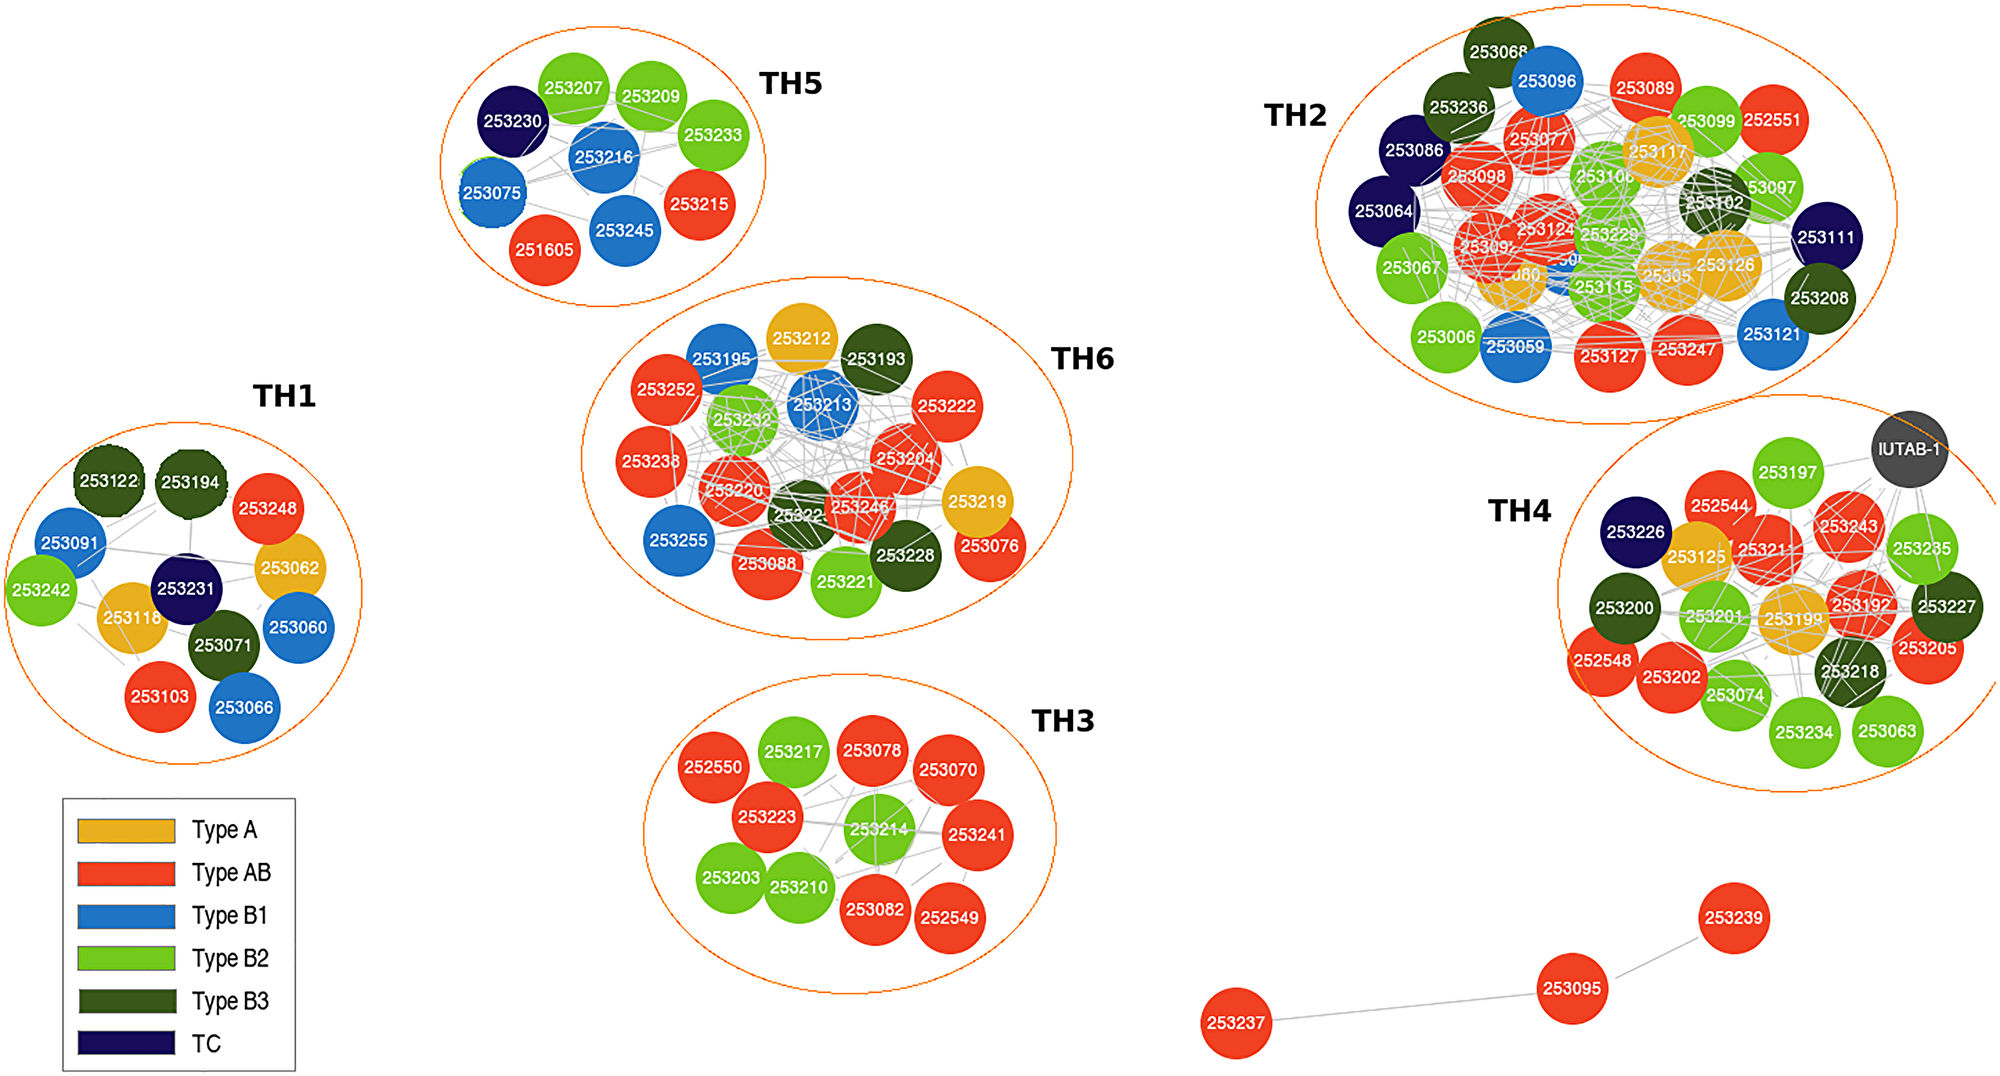 Genomic clustering approach identifies thymic epithelial tumor (TET) molecular subtypes that are independent of World Health Organization (WHO) histotypes.